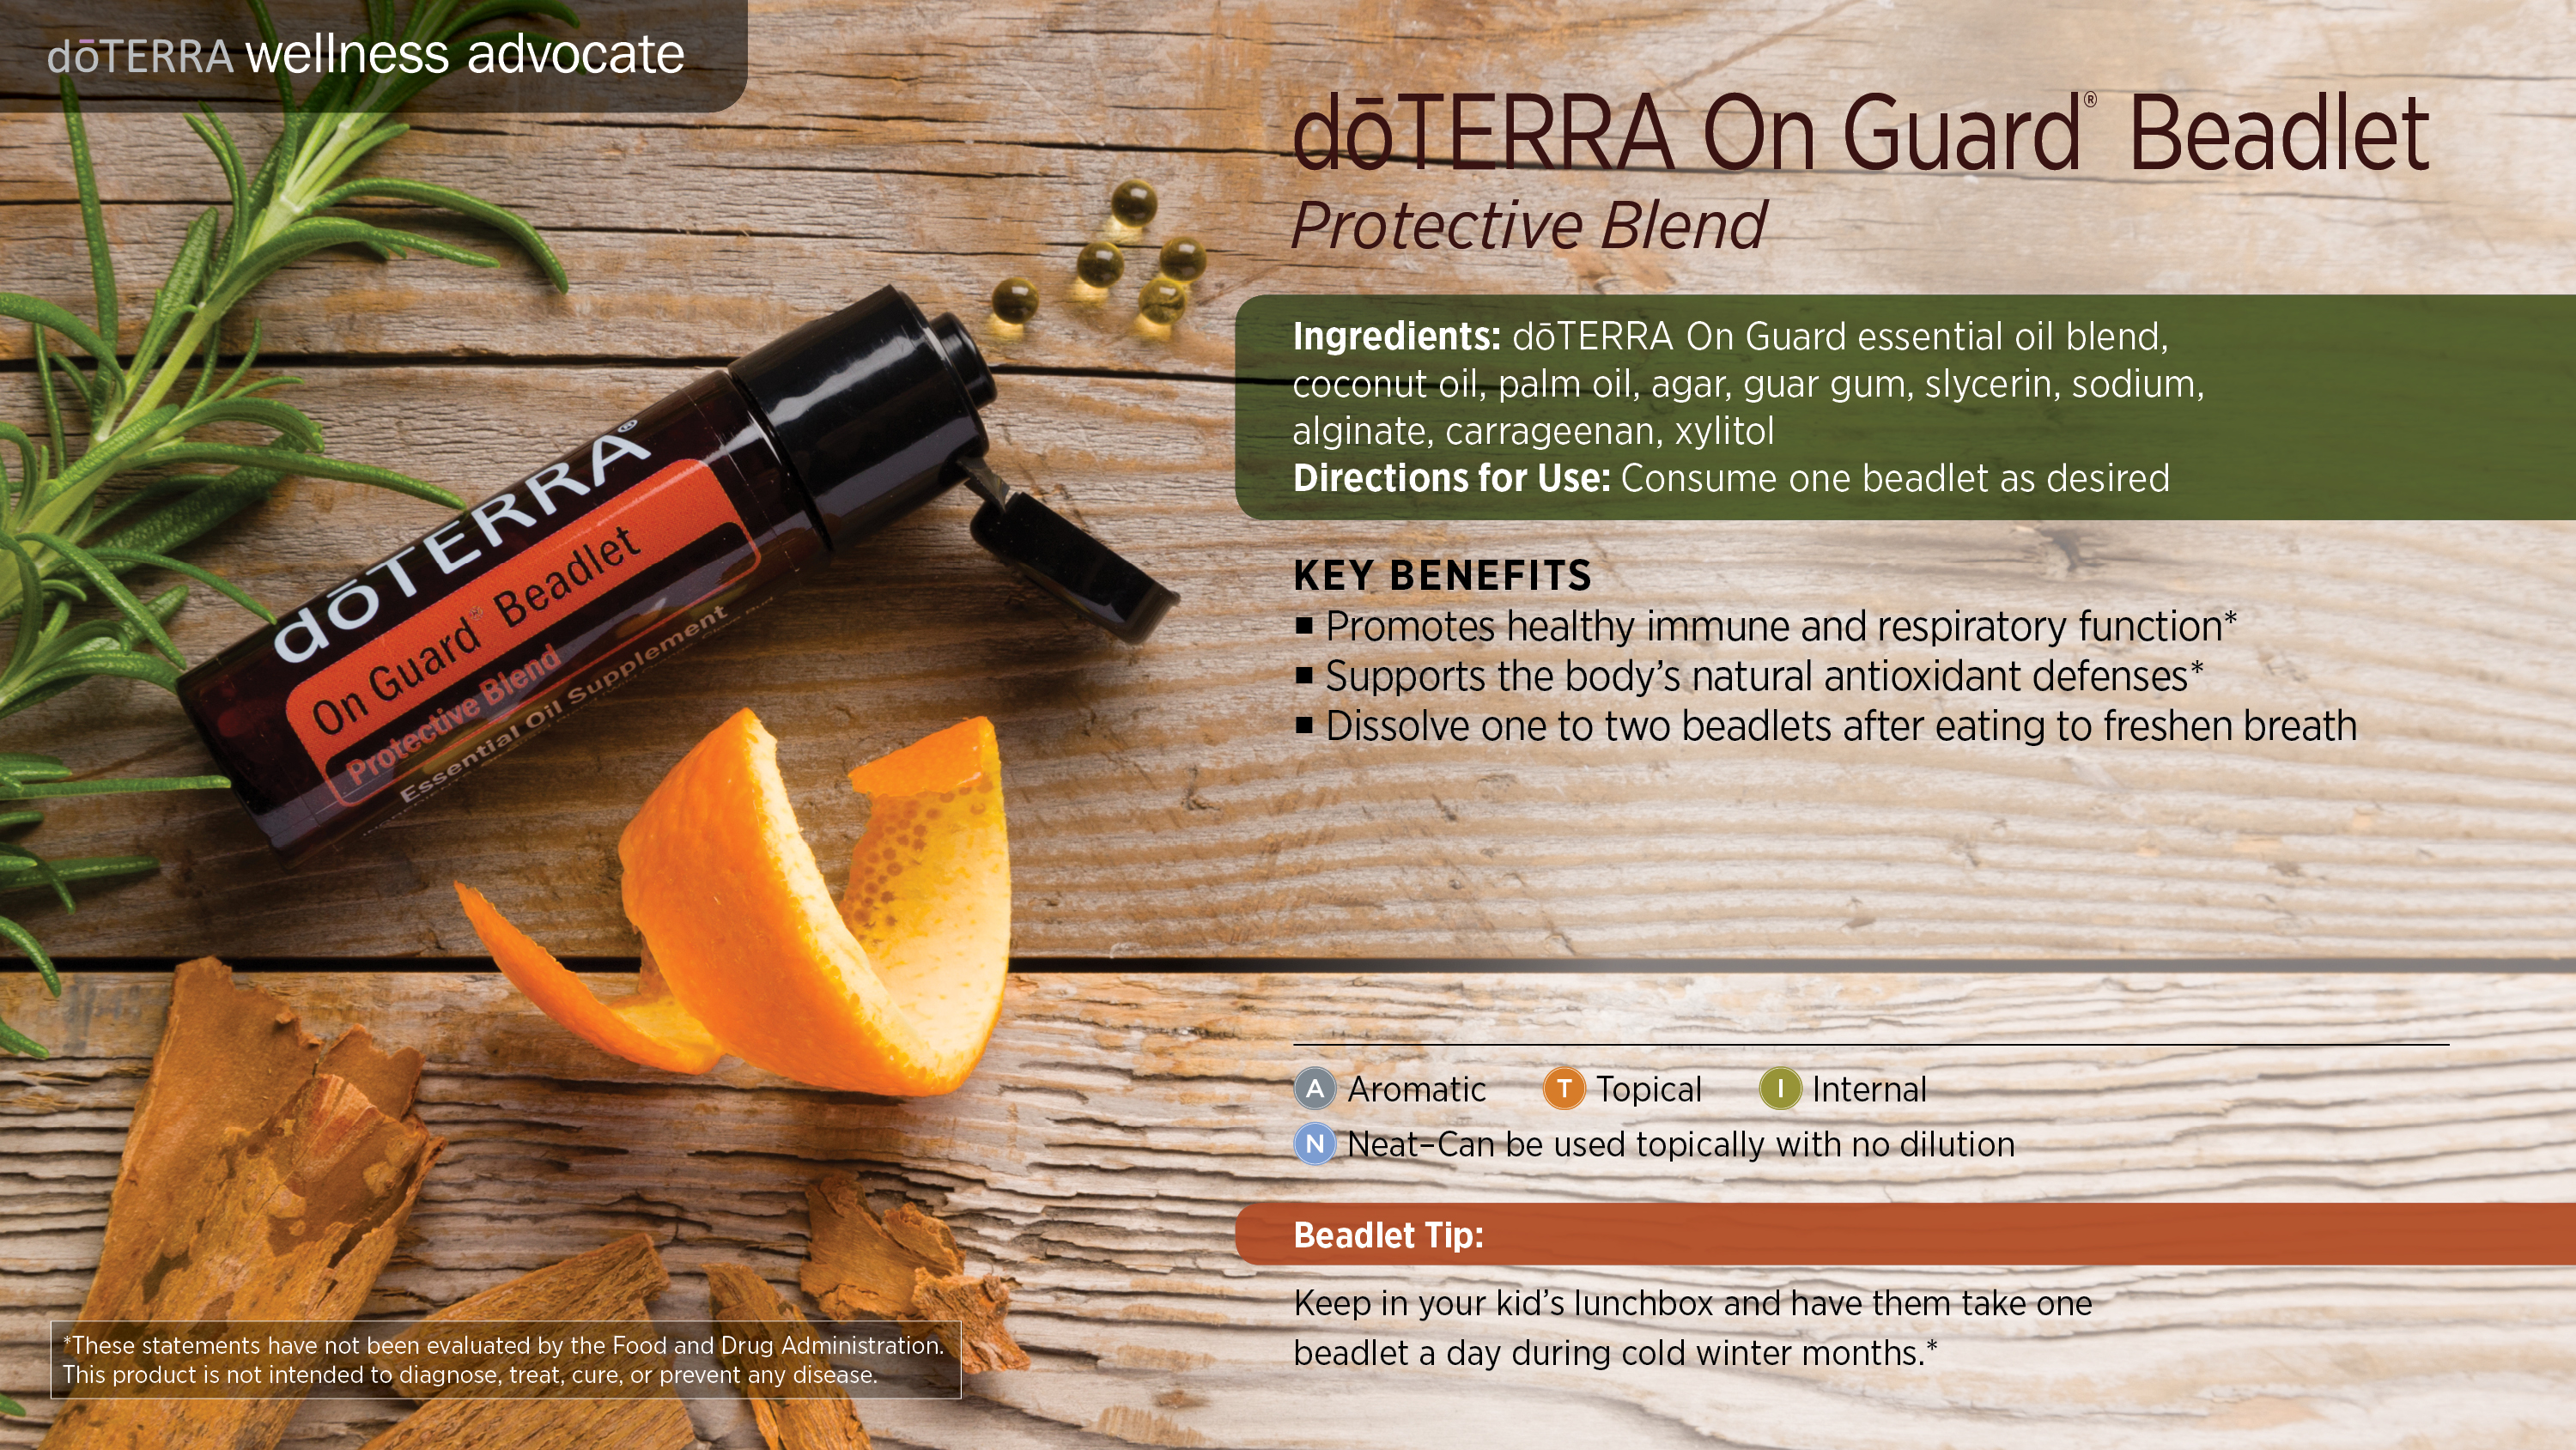 wa-doterra-on-guard-beadlet